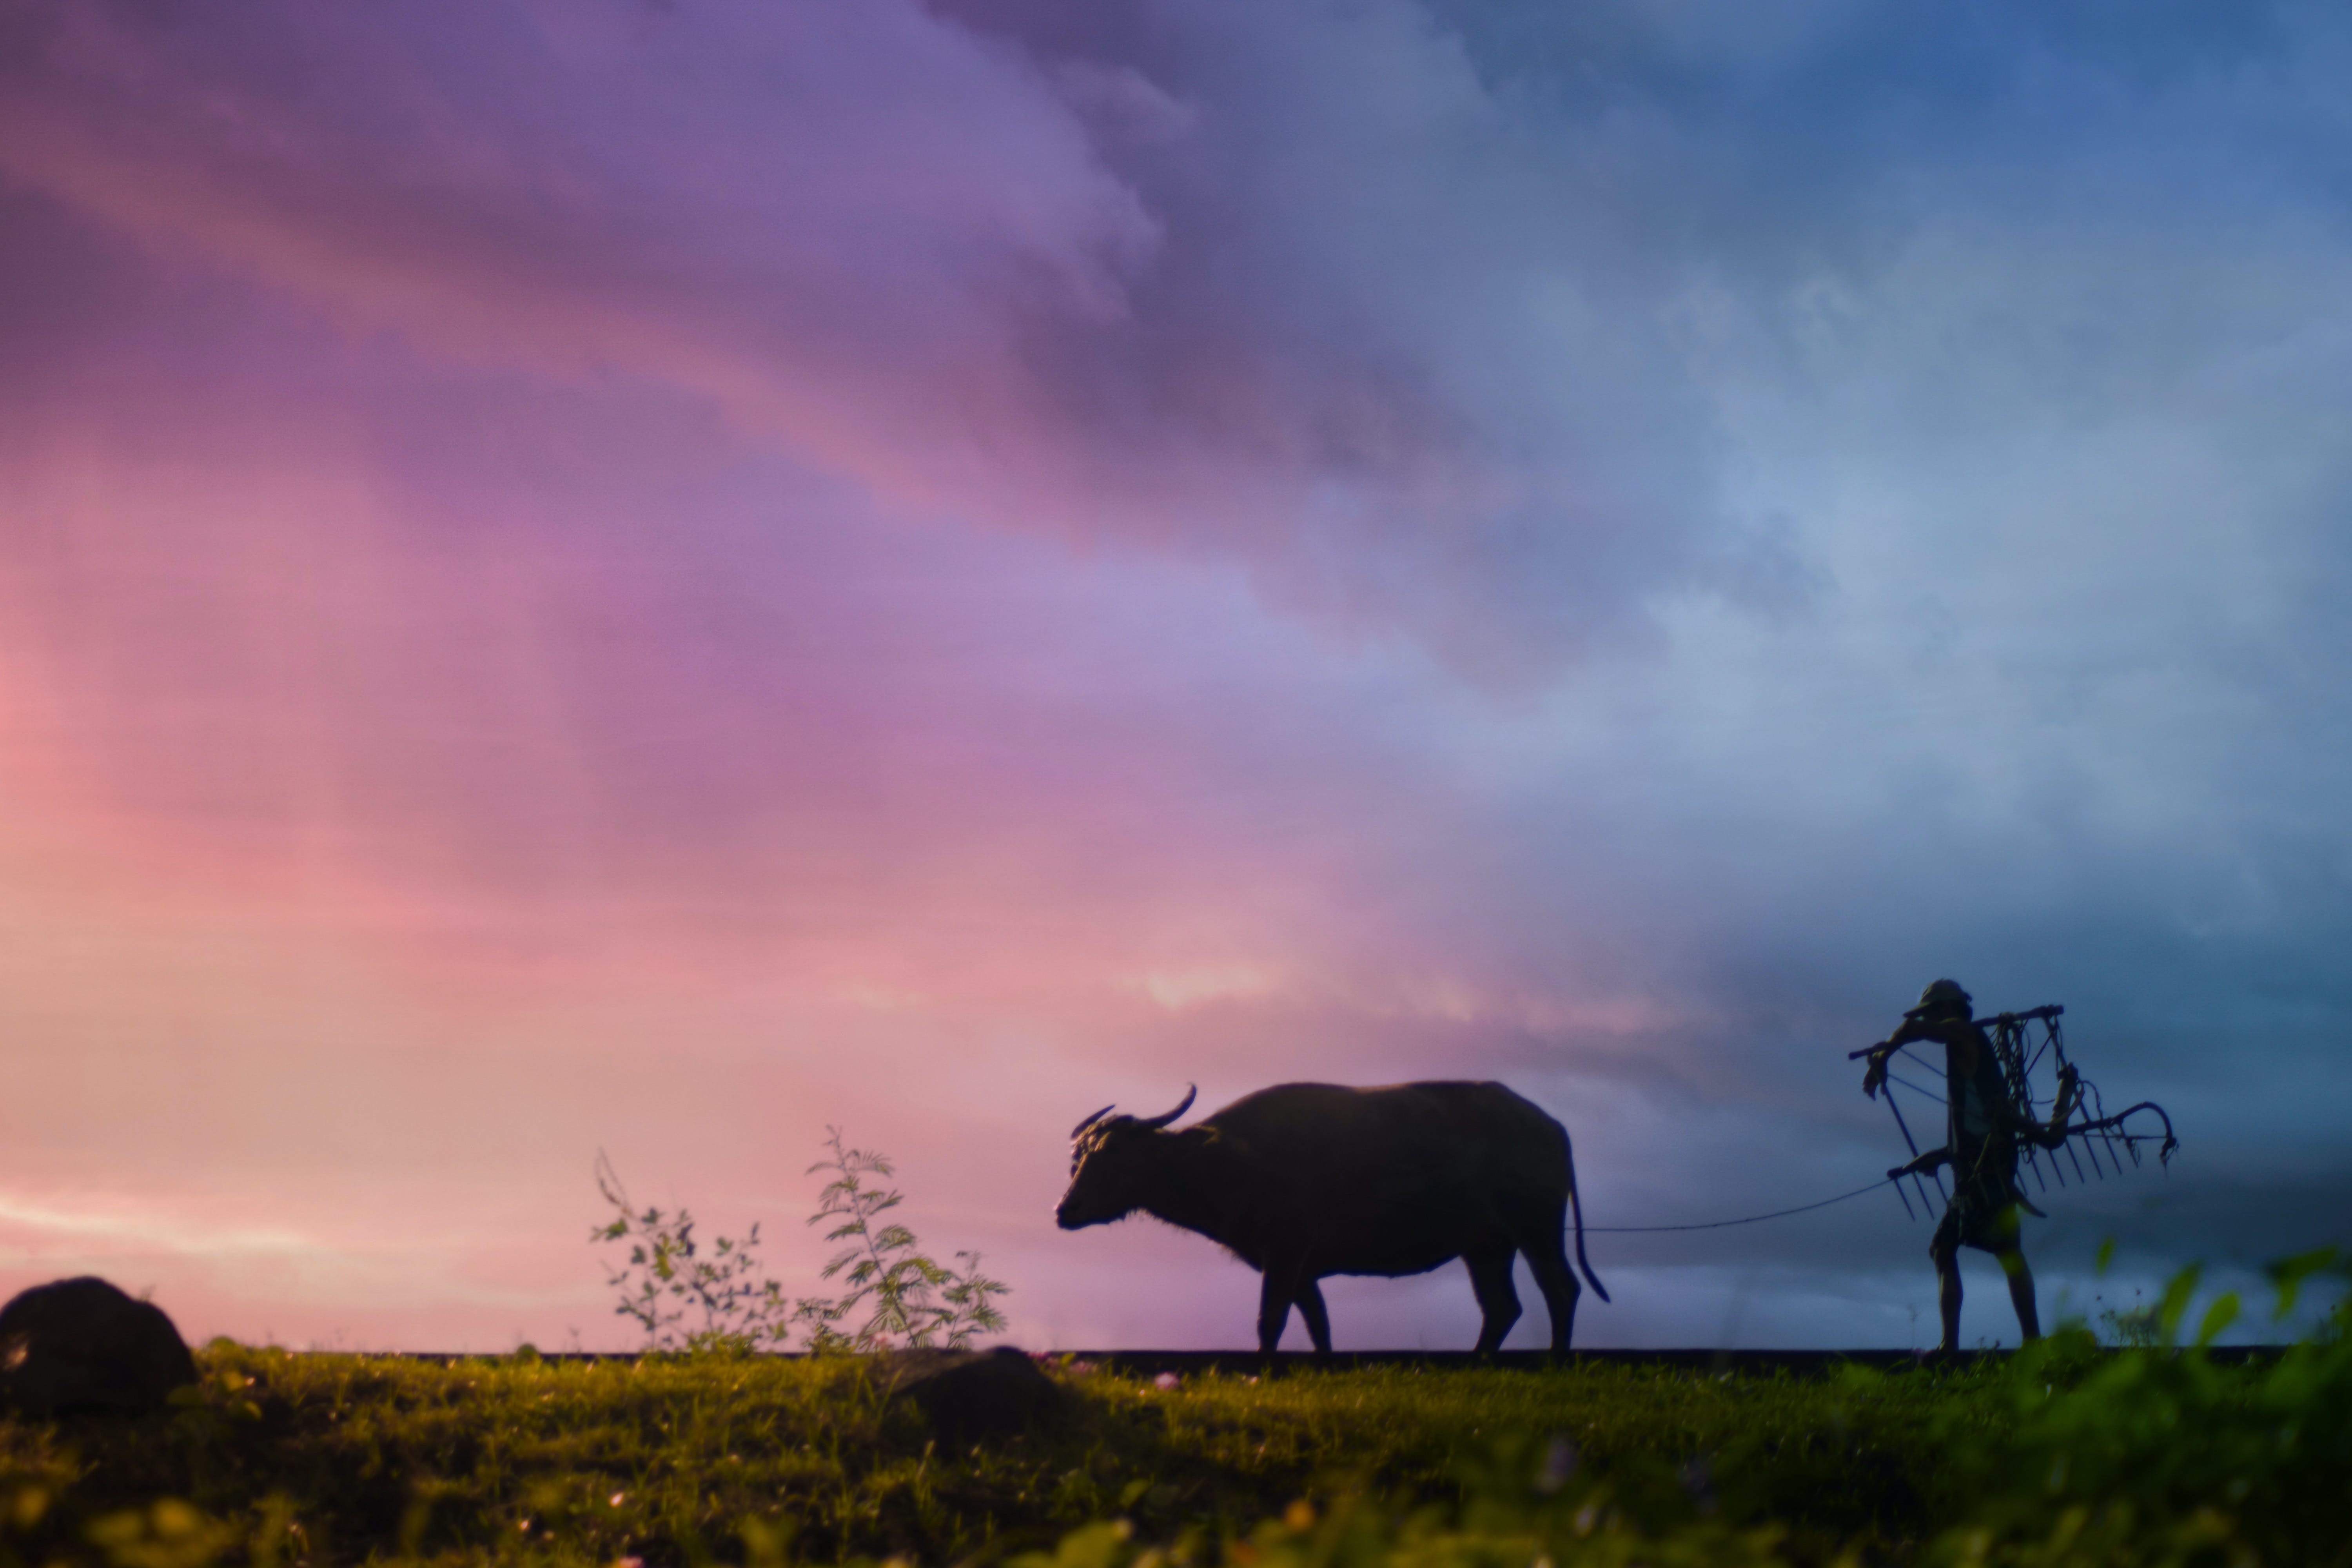 Silhouette of Man Carrying Plow While Holding the Rope of Water Buffalo Walking on Grass Field